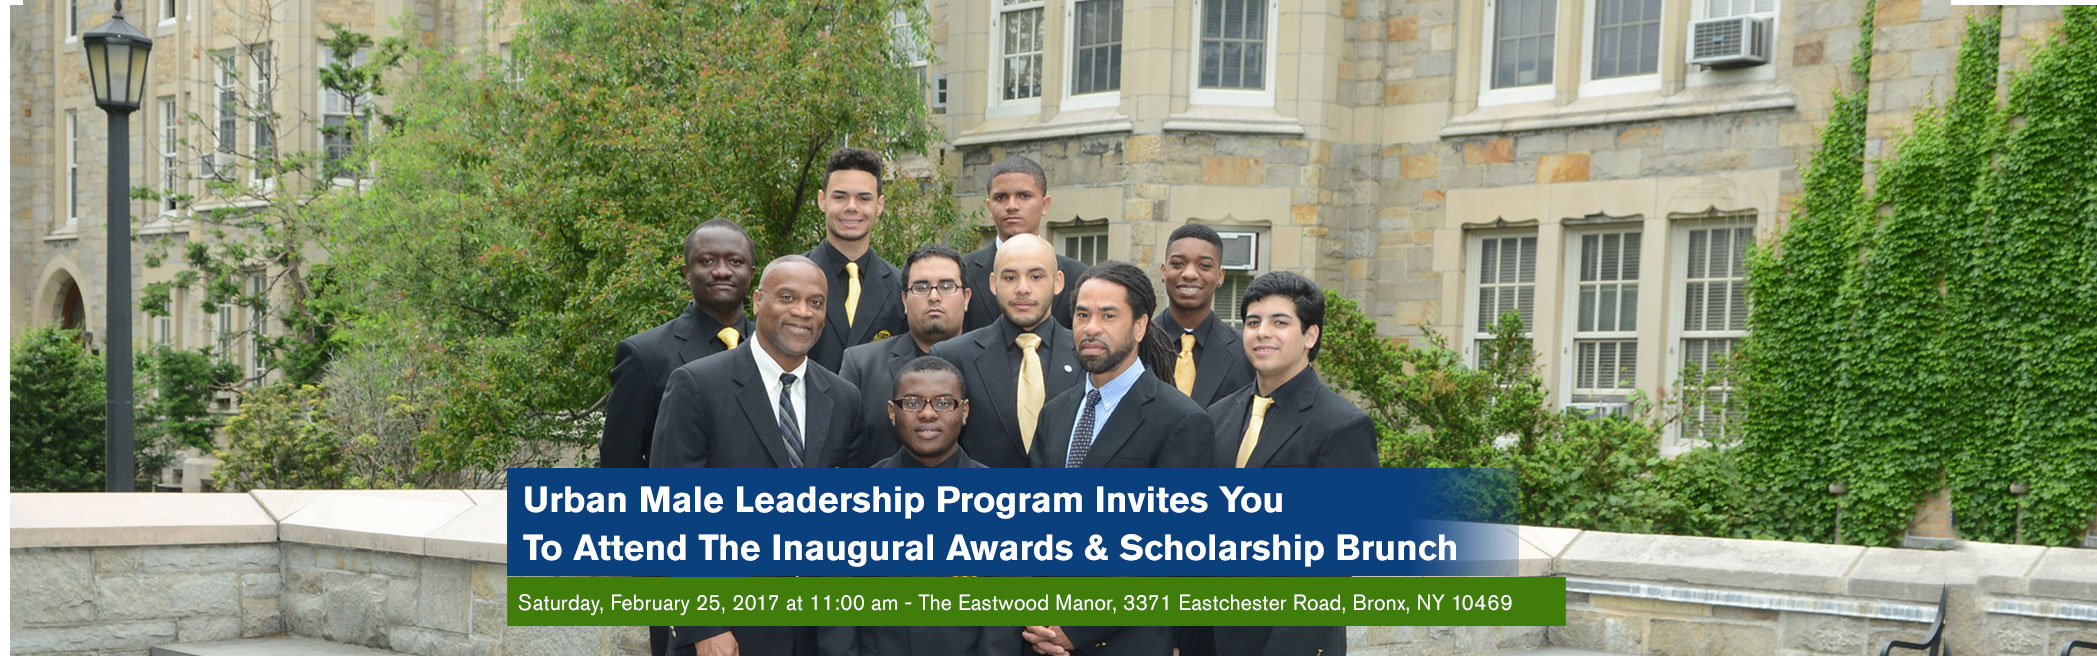 Urban Male Leadership Program